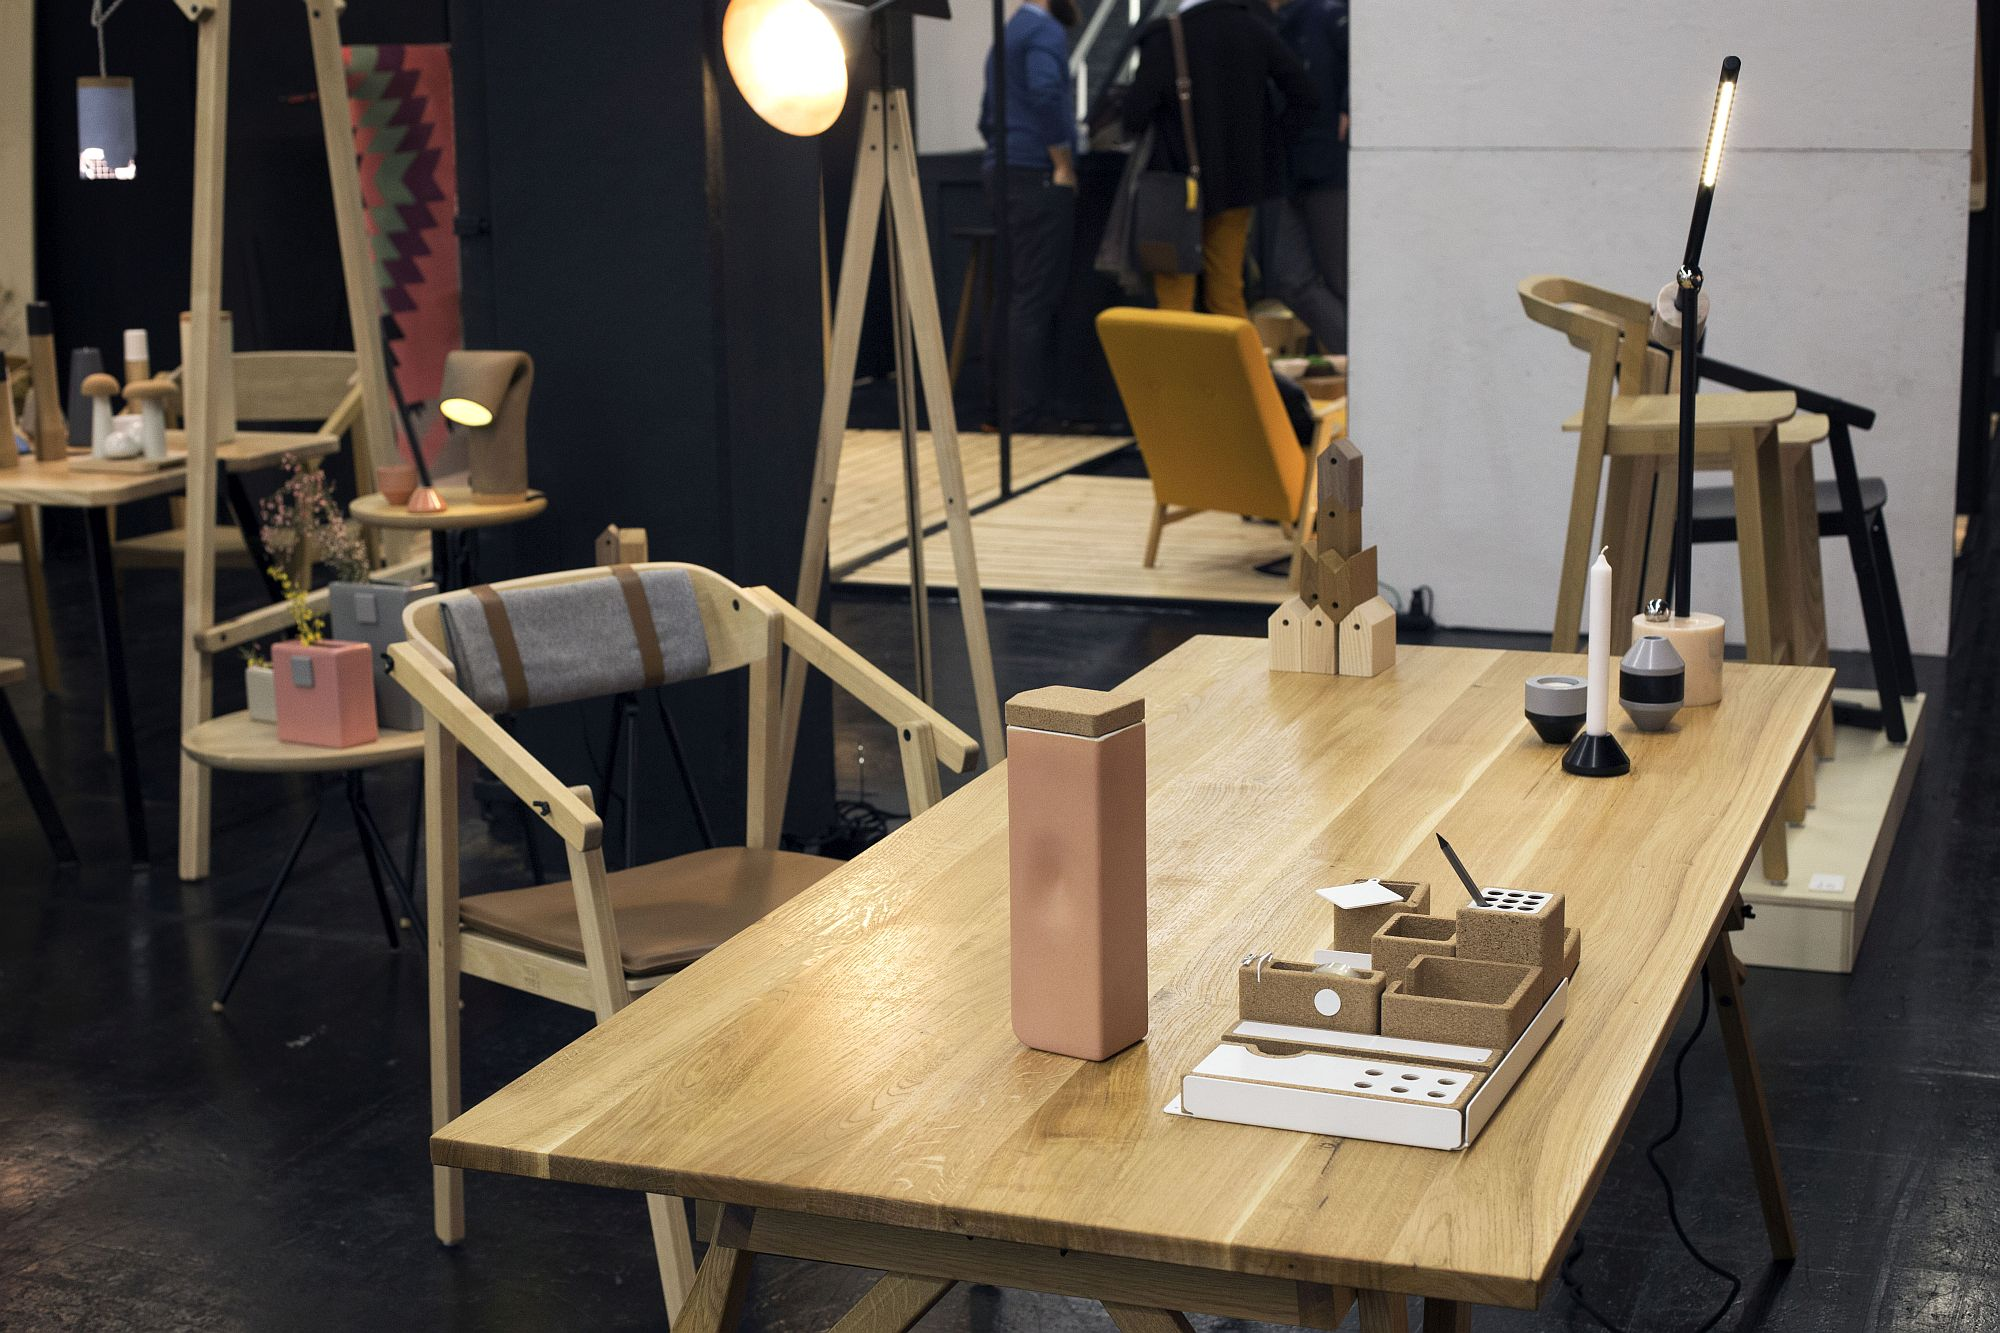 Decor-from-Romanian-firm-UBI-KUBI-at-IMM-Cologne-2017